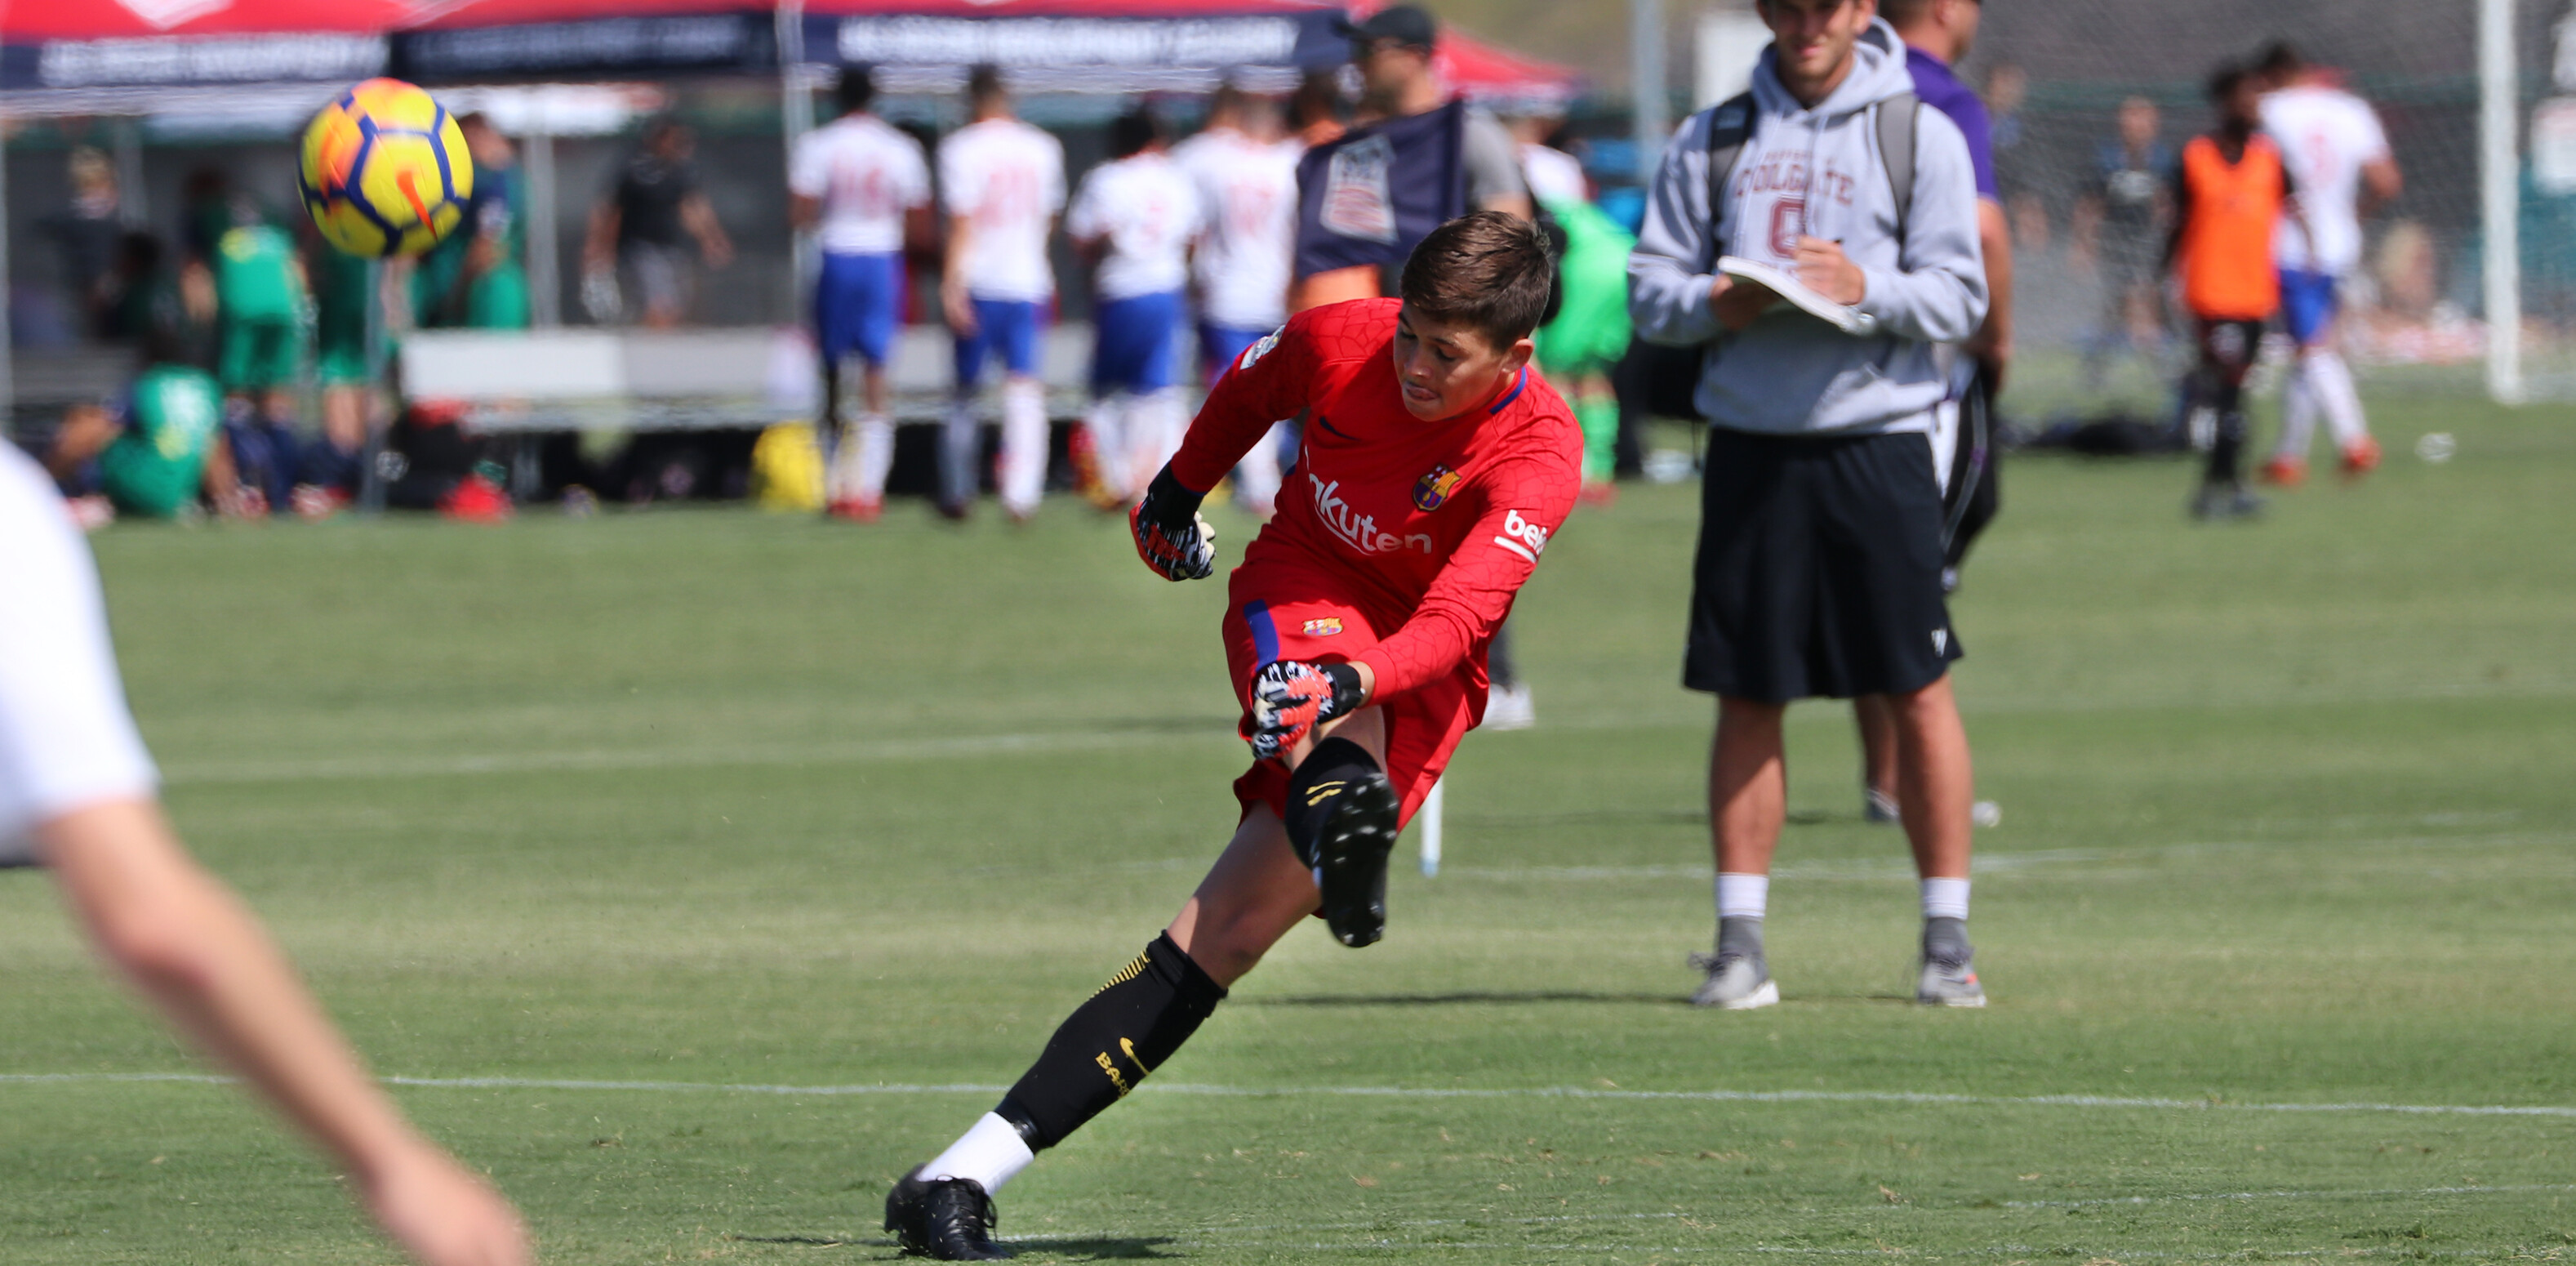 Barca Residency Academy Keeper Luke Pruter during USSDA Playoffs